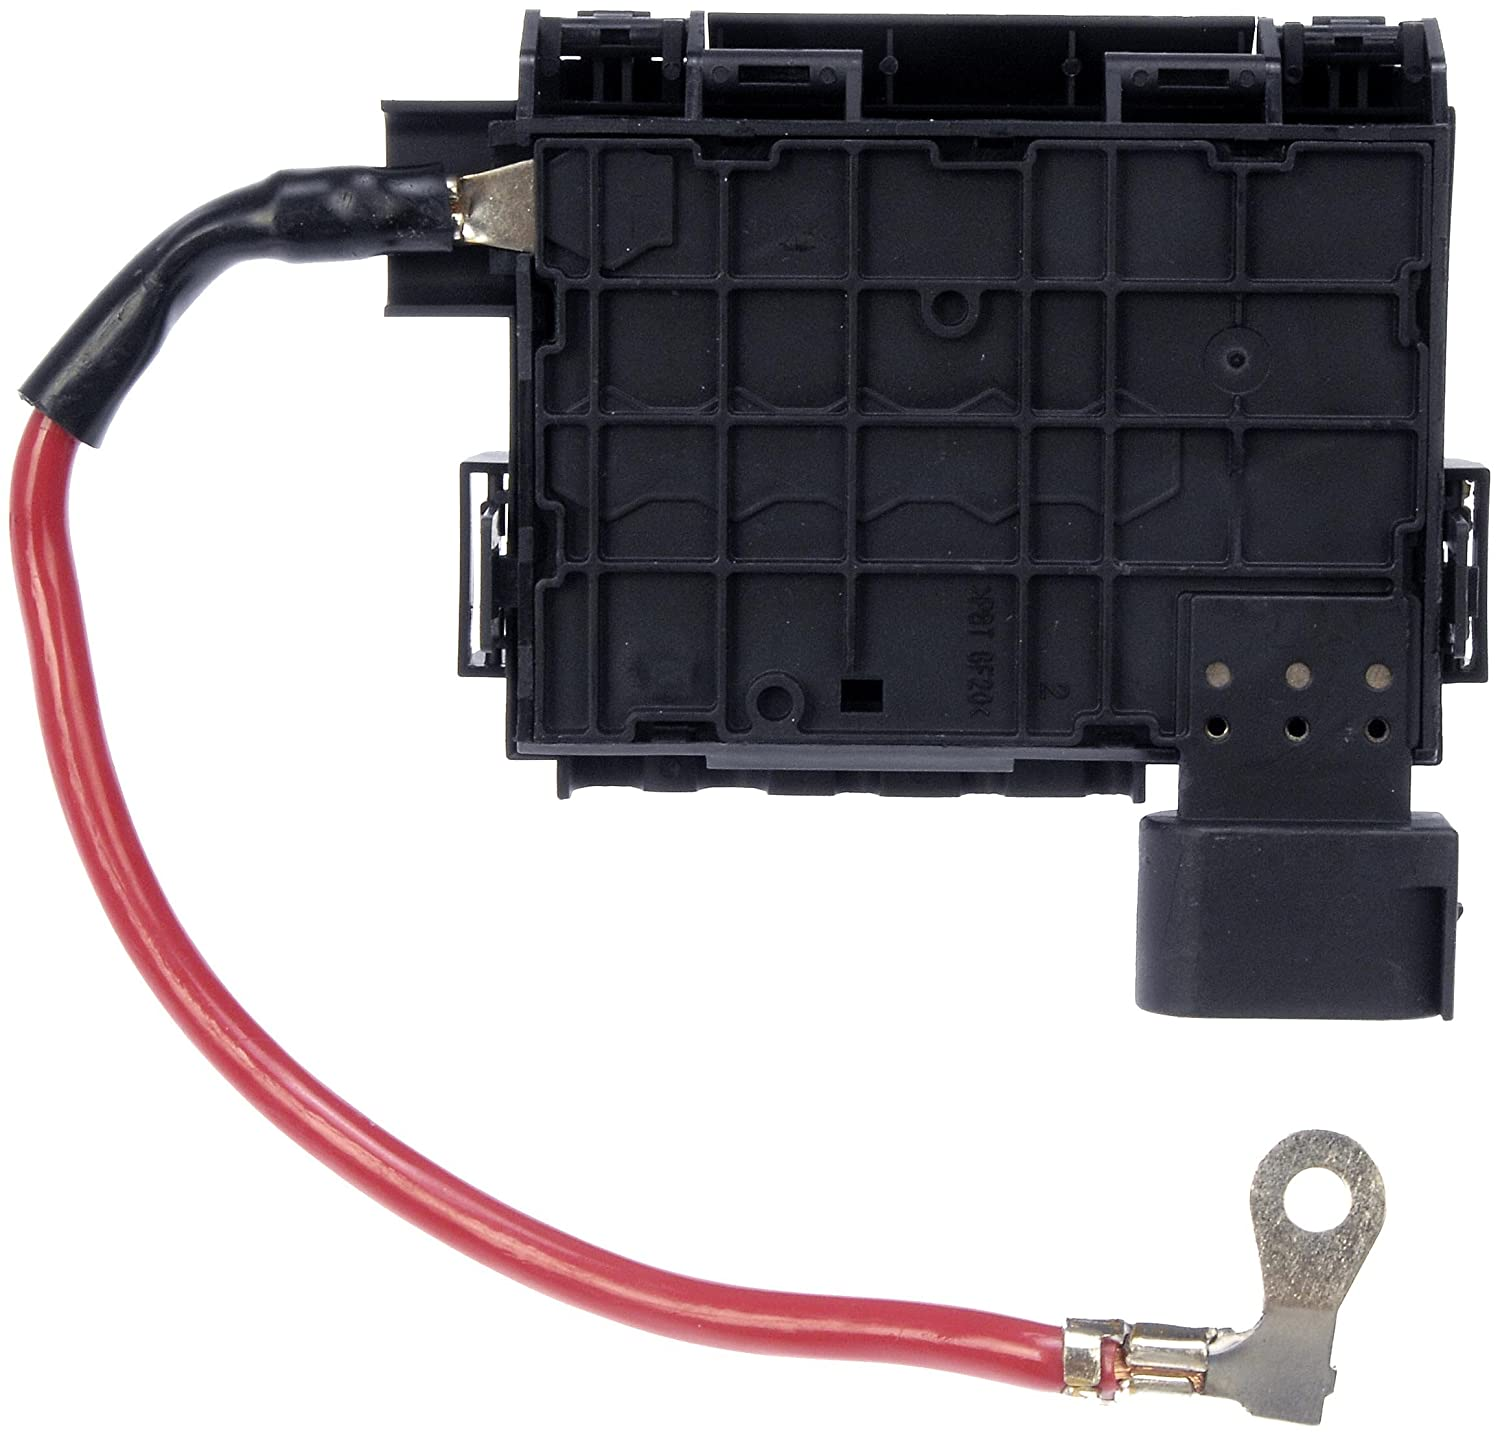 Dorman 924 681 Voltage Fuse Box Automotive Under Dash 2002 Vw Beetle